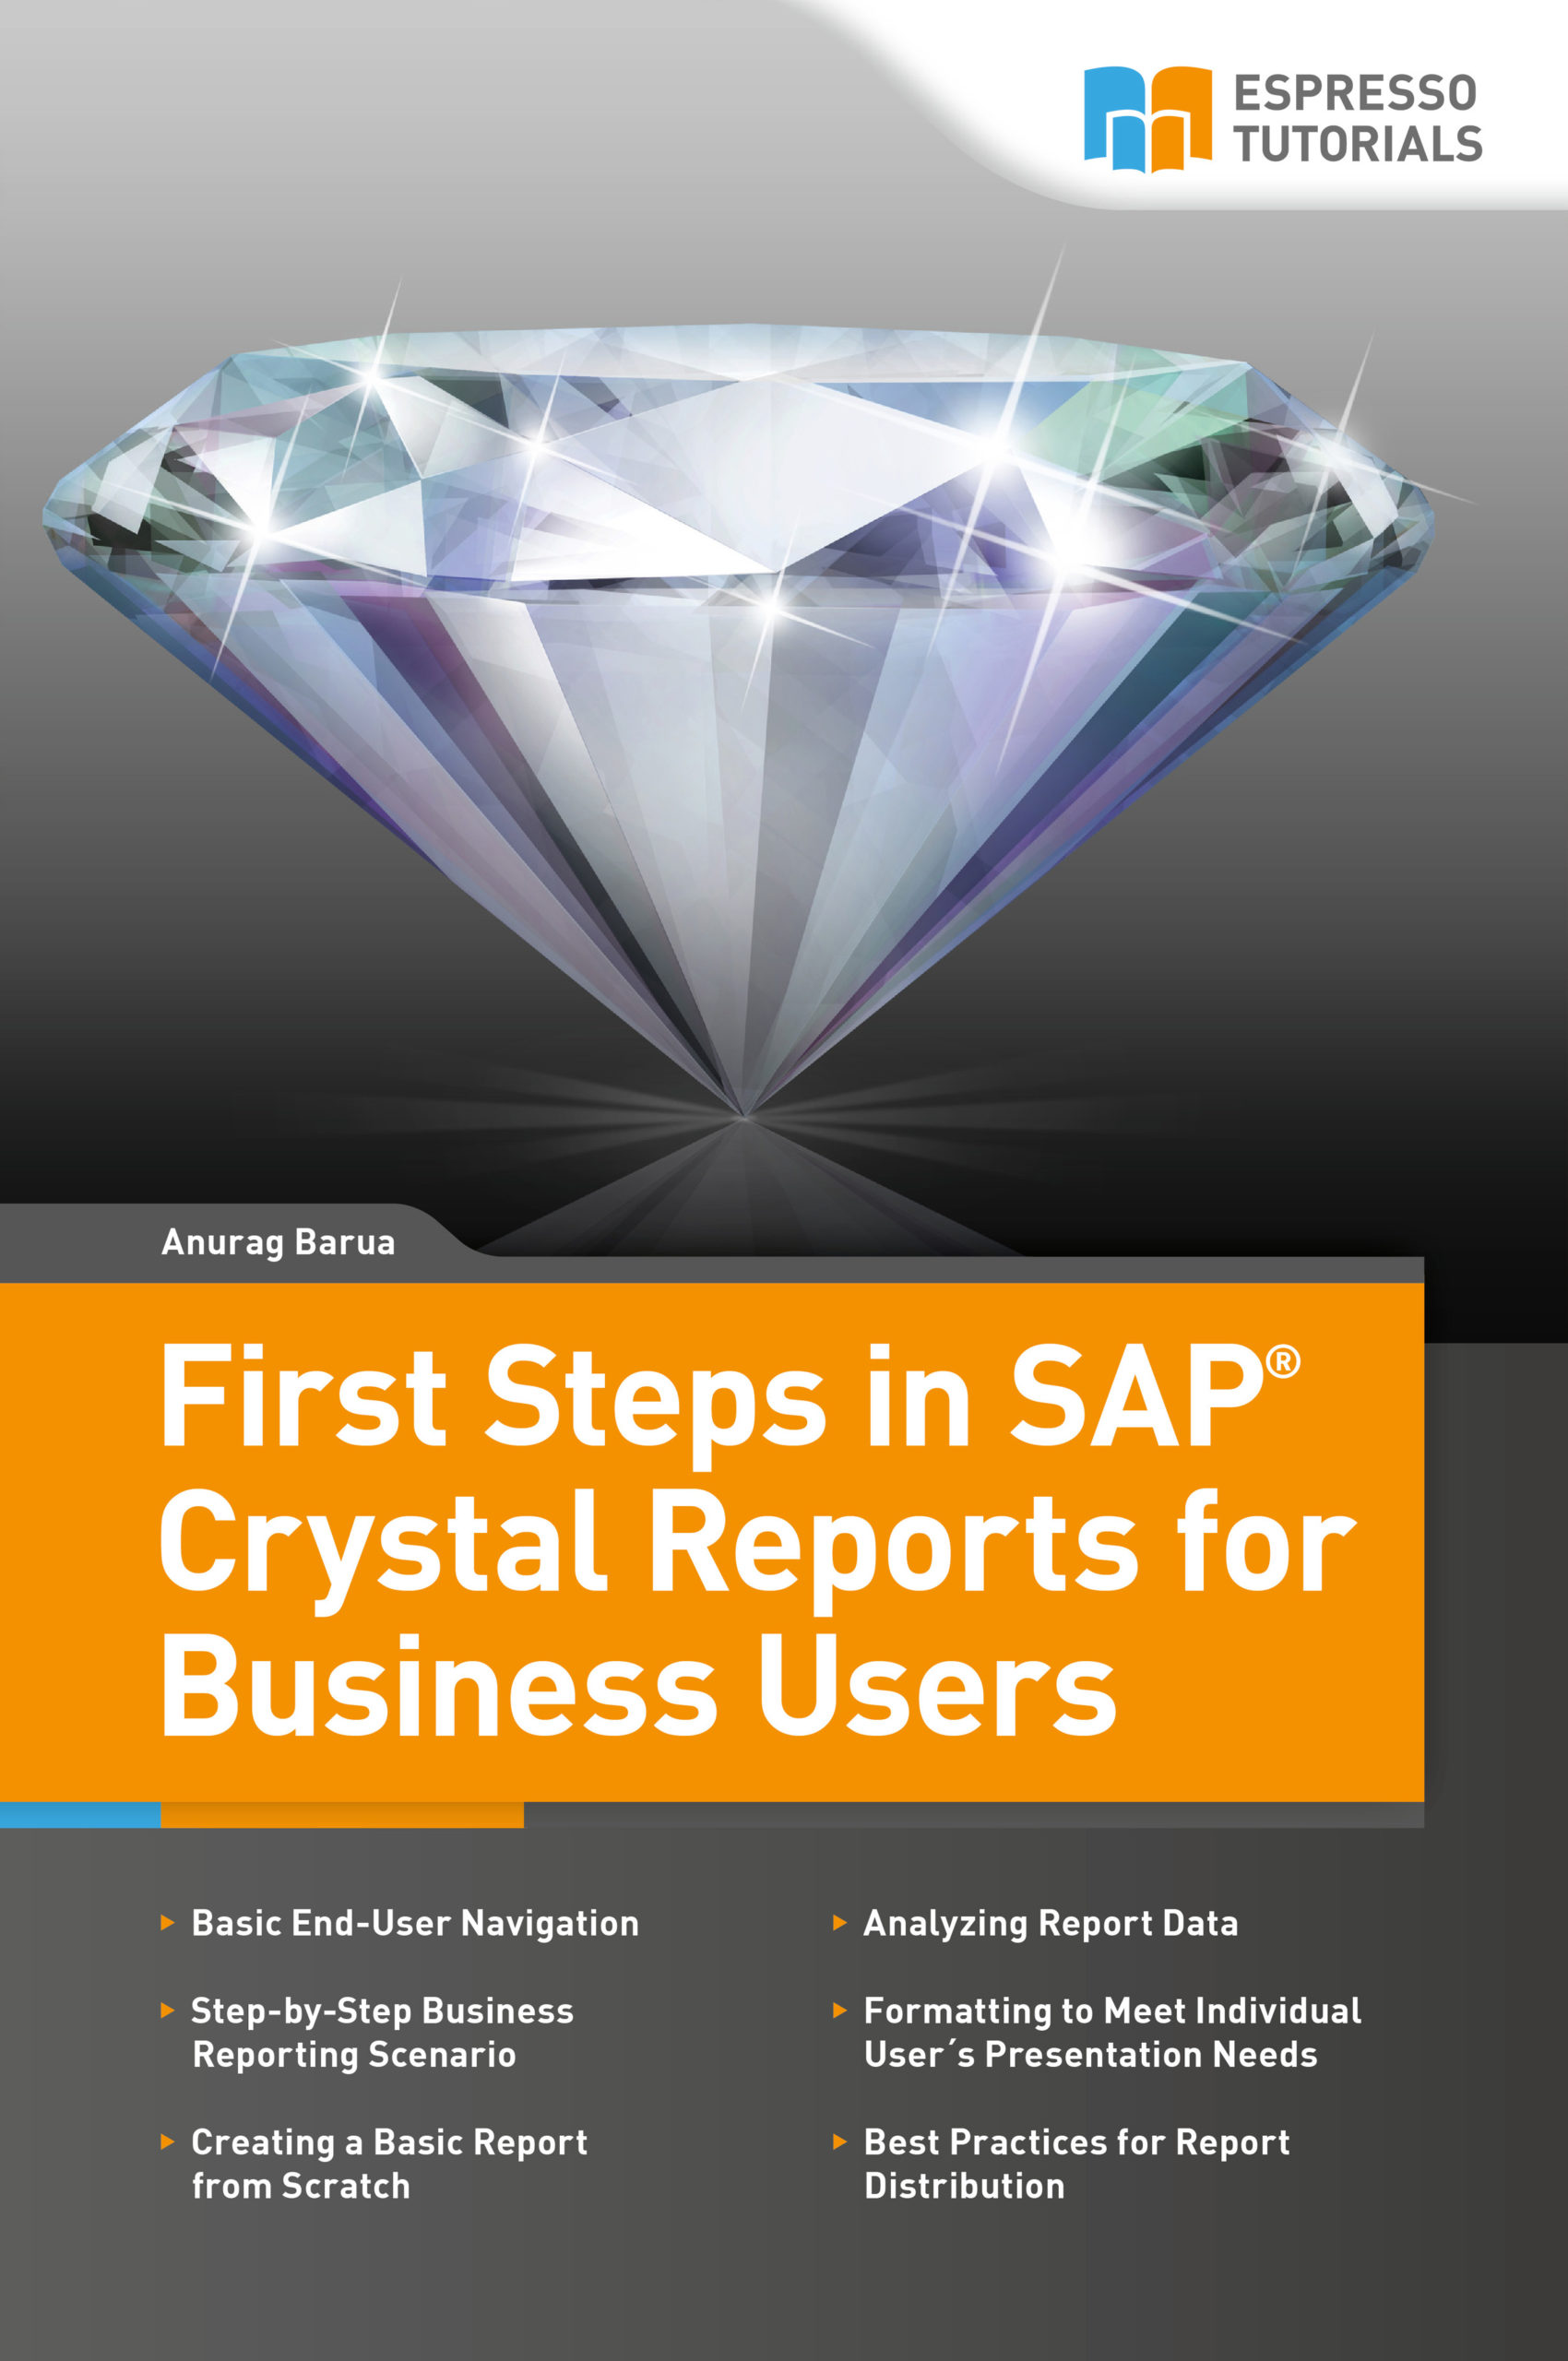 First Steps in SAP Crystal Reports for Business Users